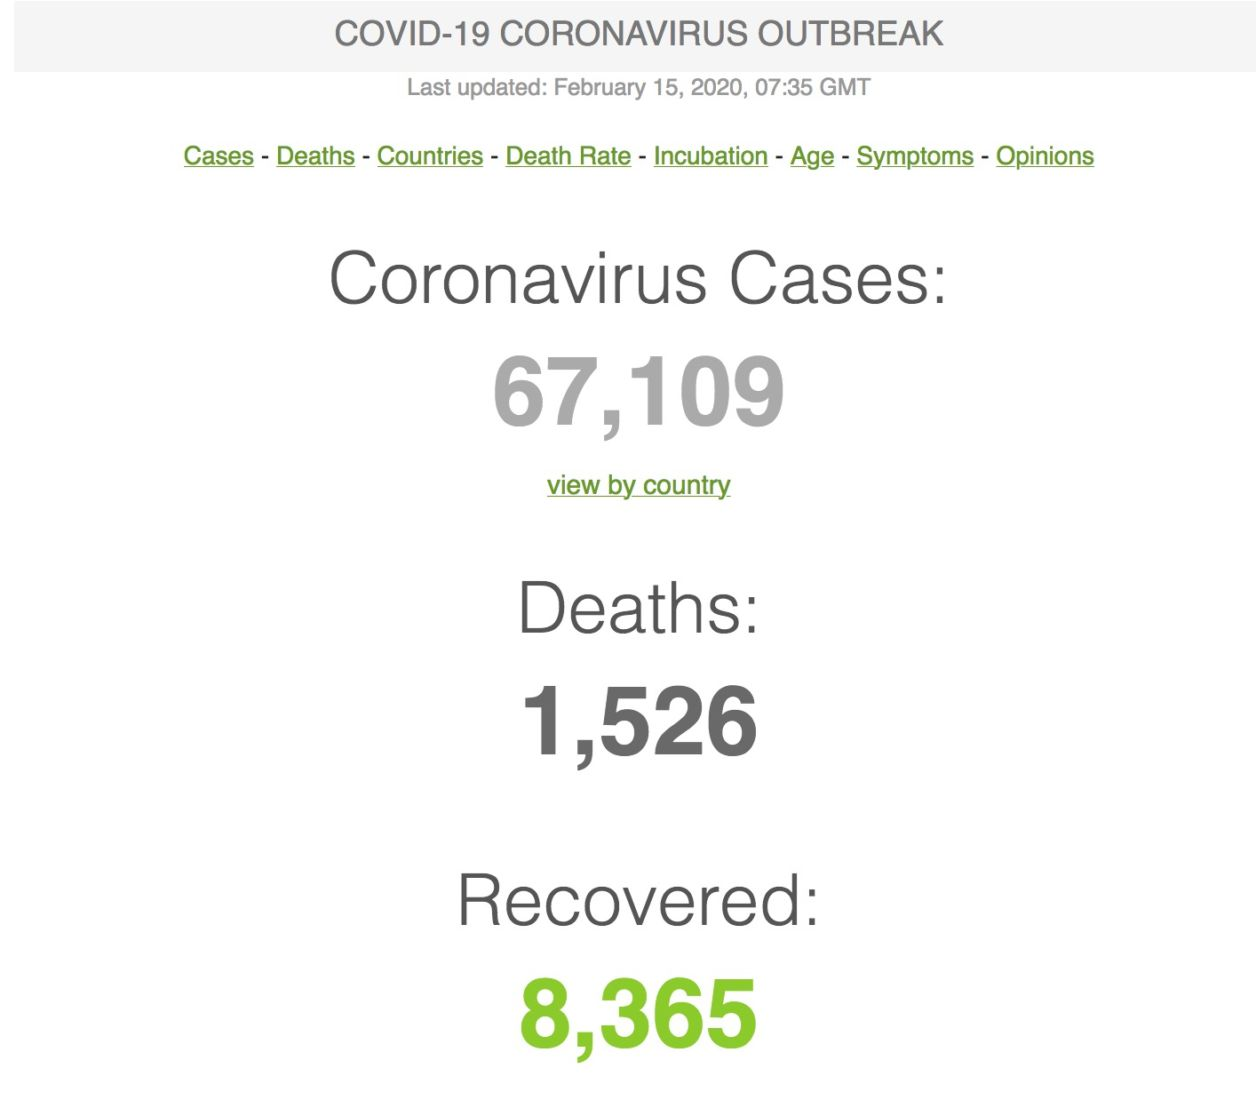 Thai healthcare worker tests positive for COVID-19 coronavirus | News by Thaiger